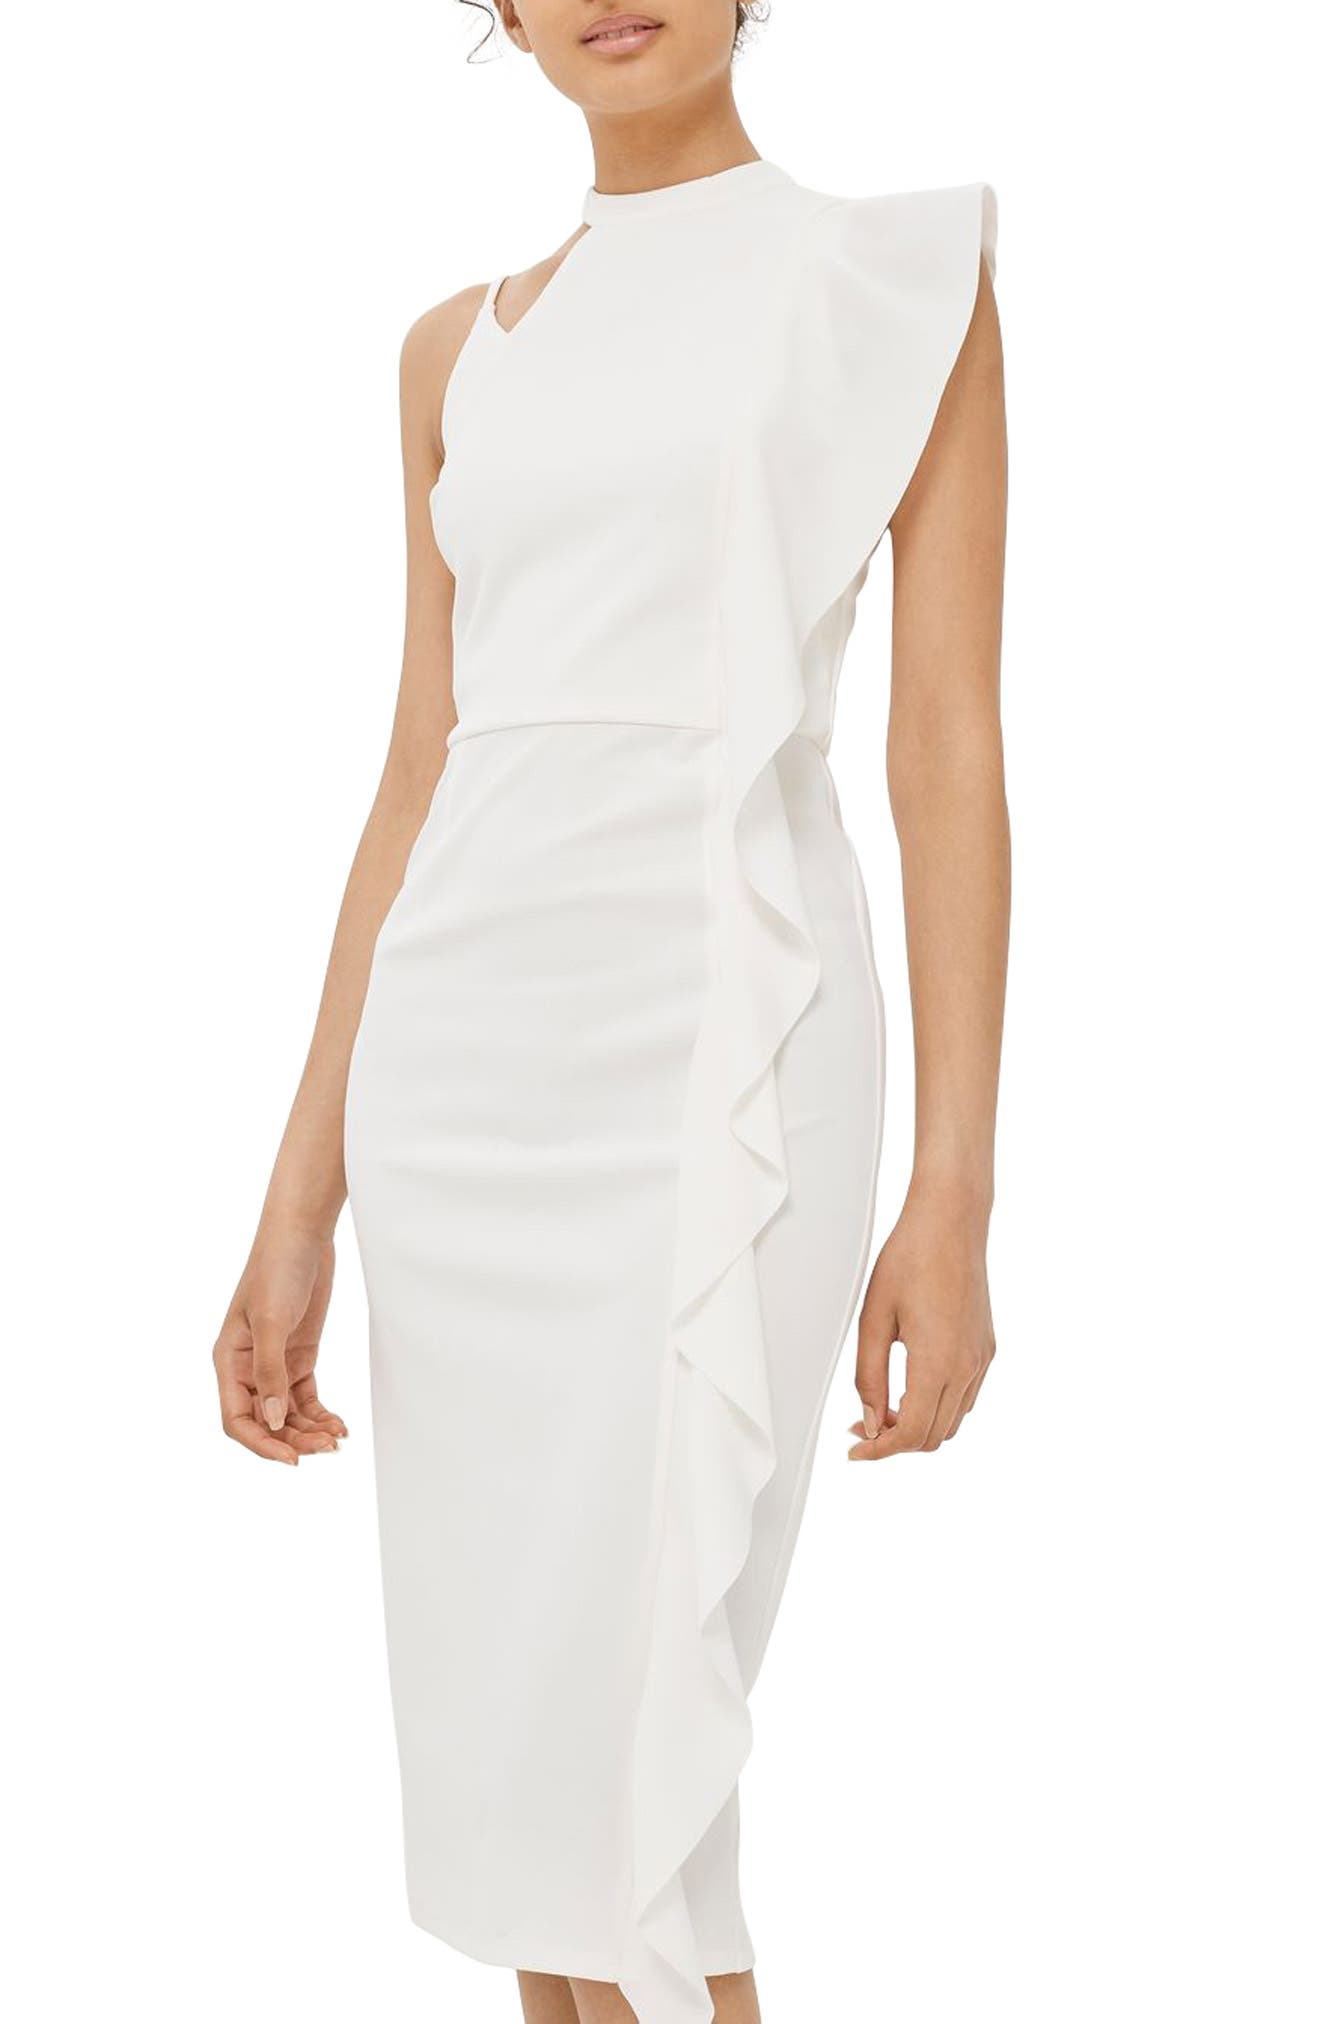 Topshop Asymmetrical Ruffle Midi Dress